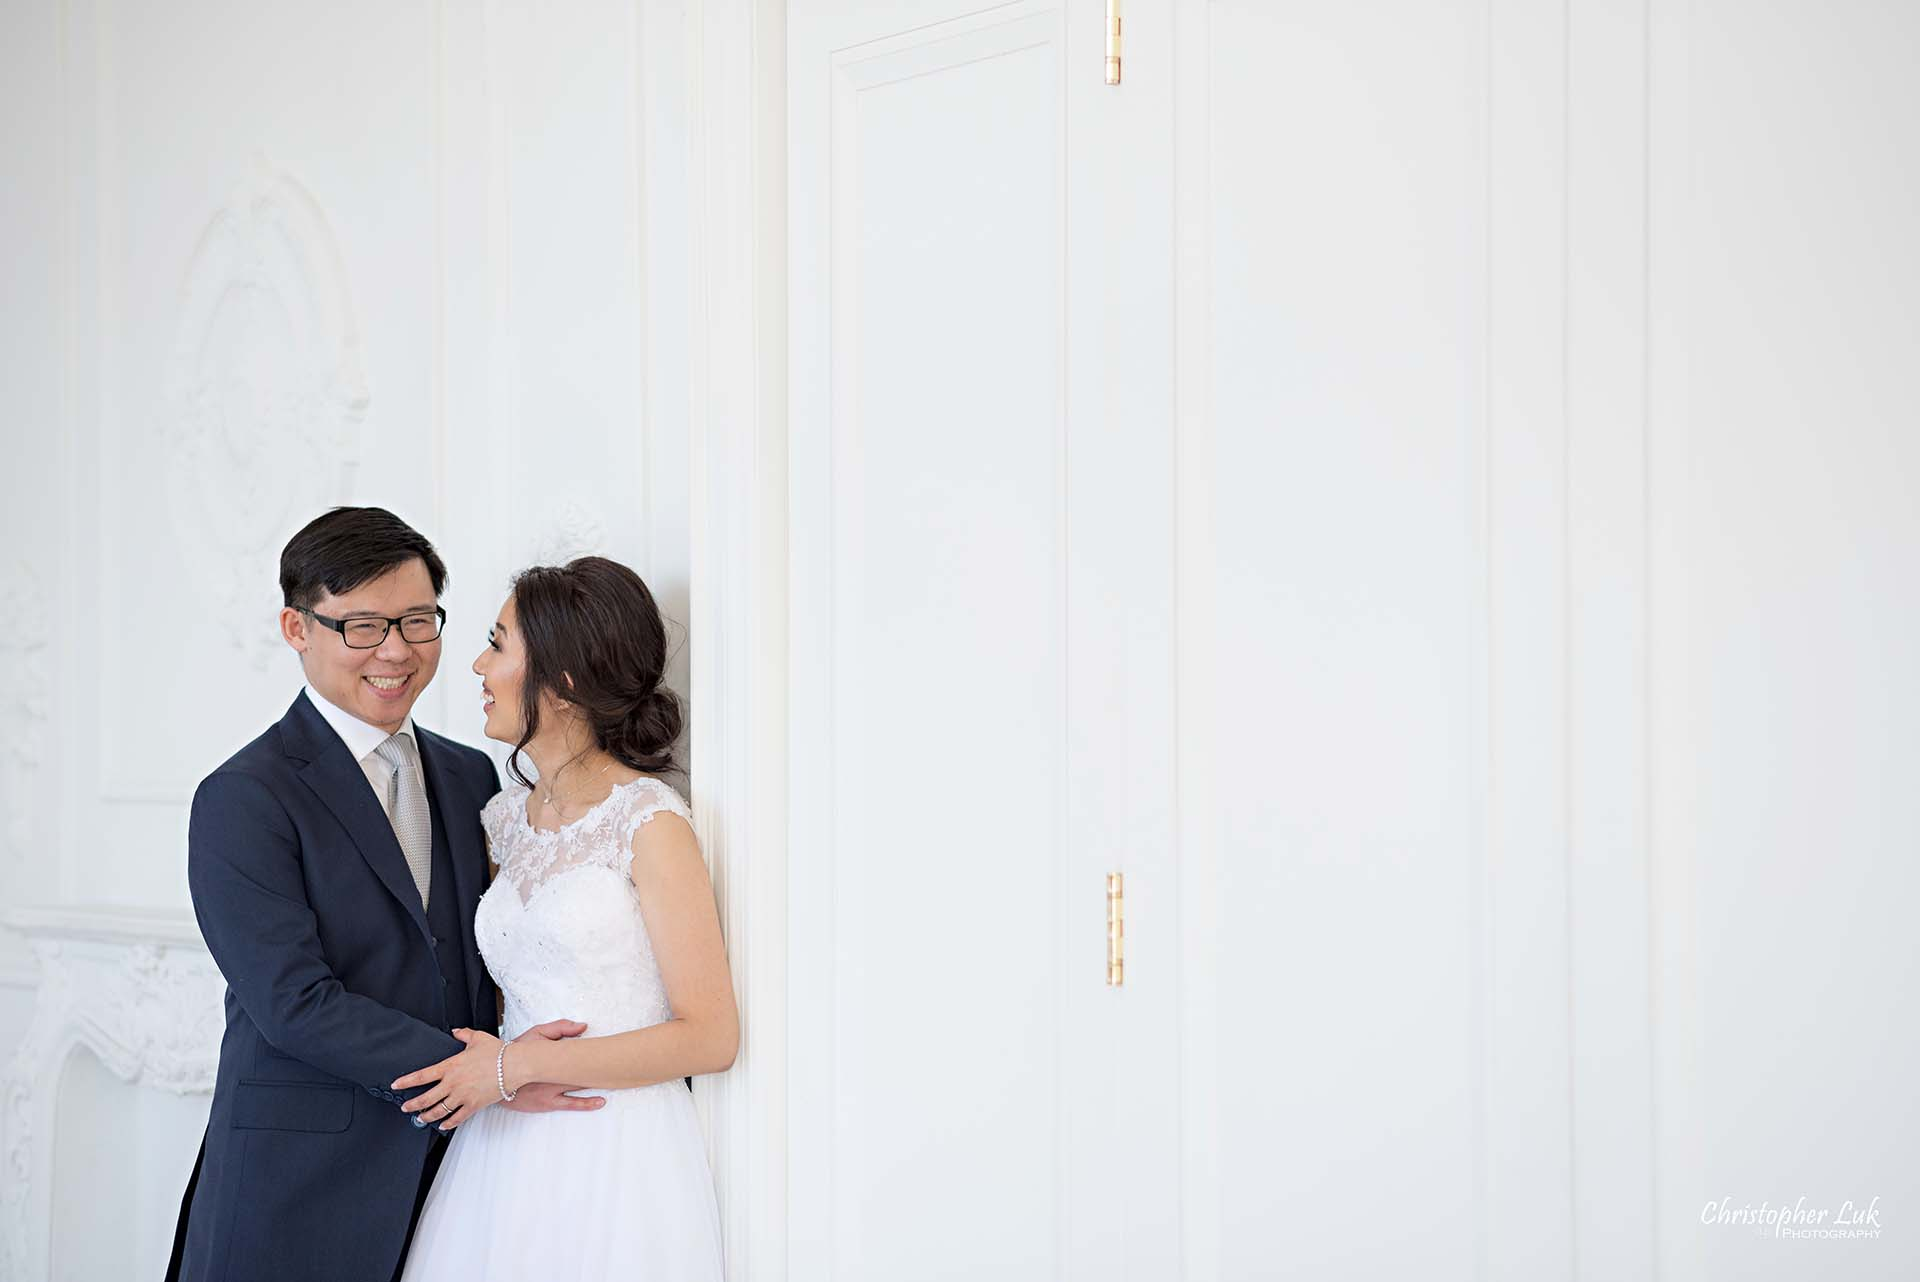 Christopher Luk Toronto Wedding Photographer - Mint Room Studios Bride Groom Natural Candid Photojournalistic Conservatory Ballroom Hug Laugh Wide